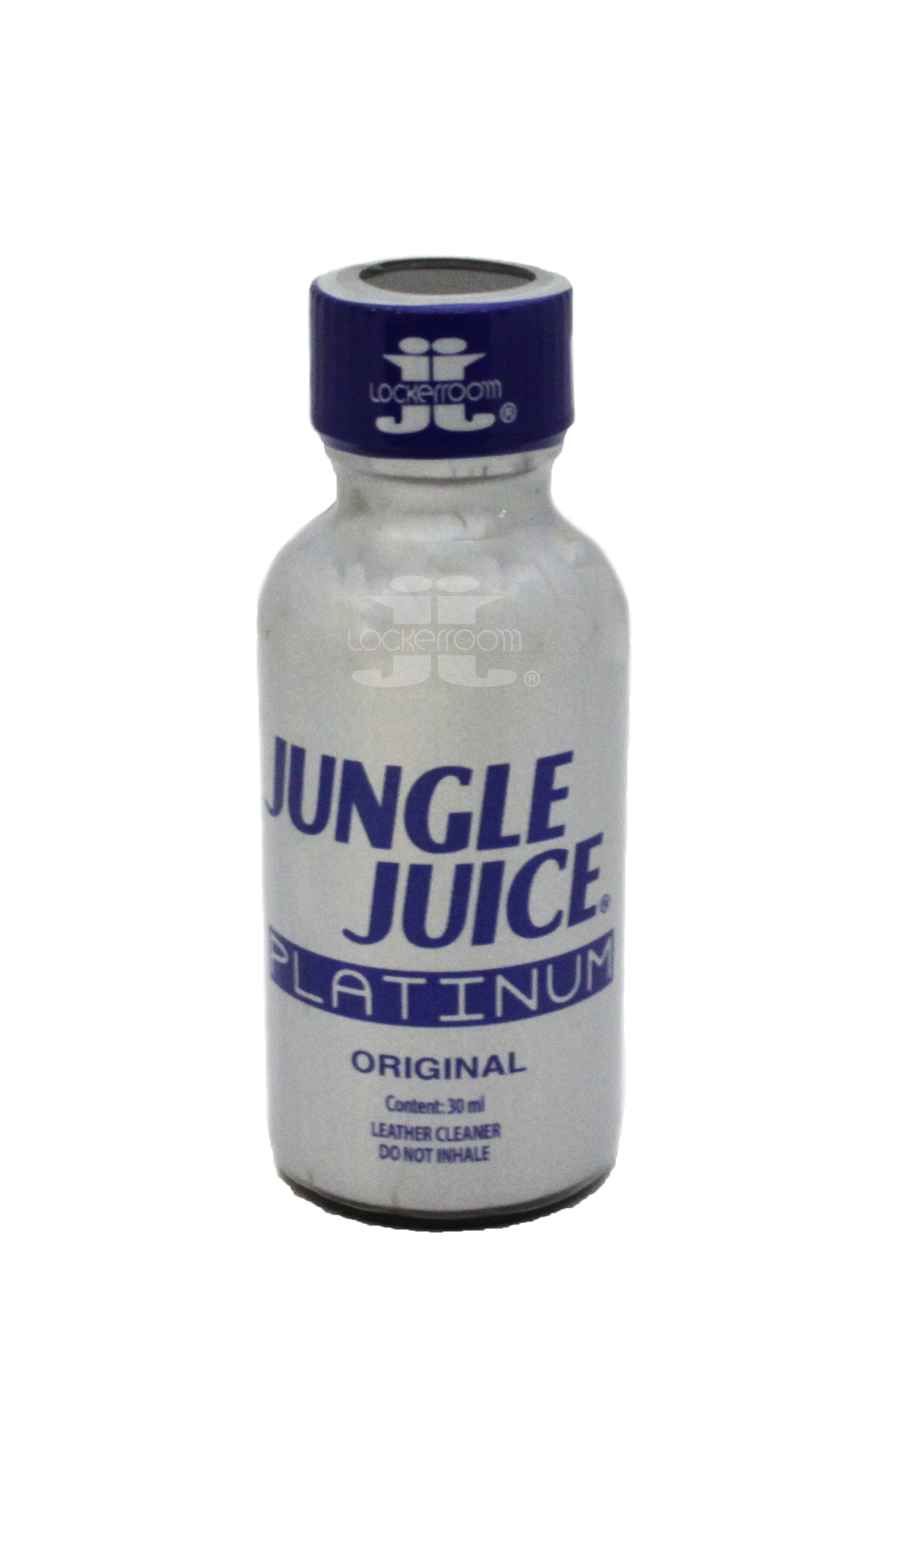 Jungle Juice Platinum 30mL Bottle